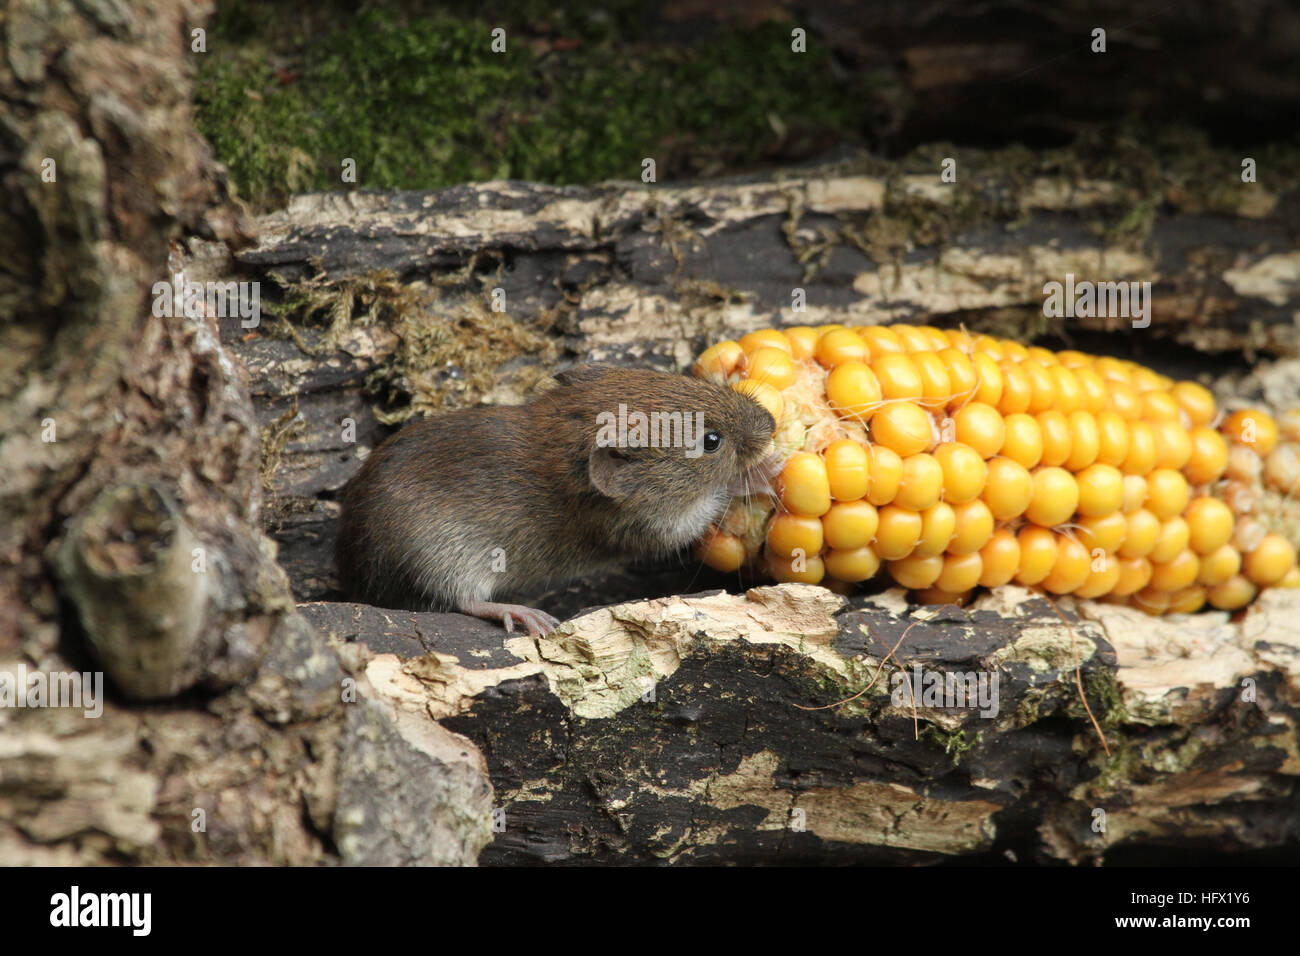 A Bank Vole (Myodes glareolus) with a corn on the cob that it is eating. - Stock Image